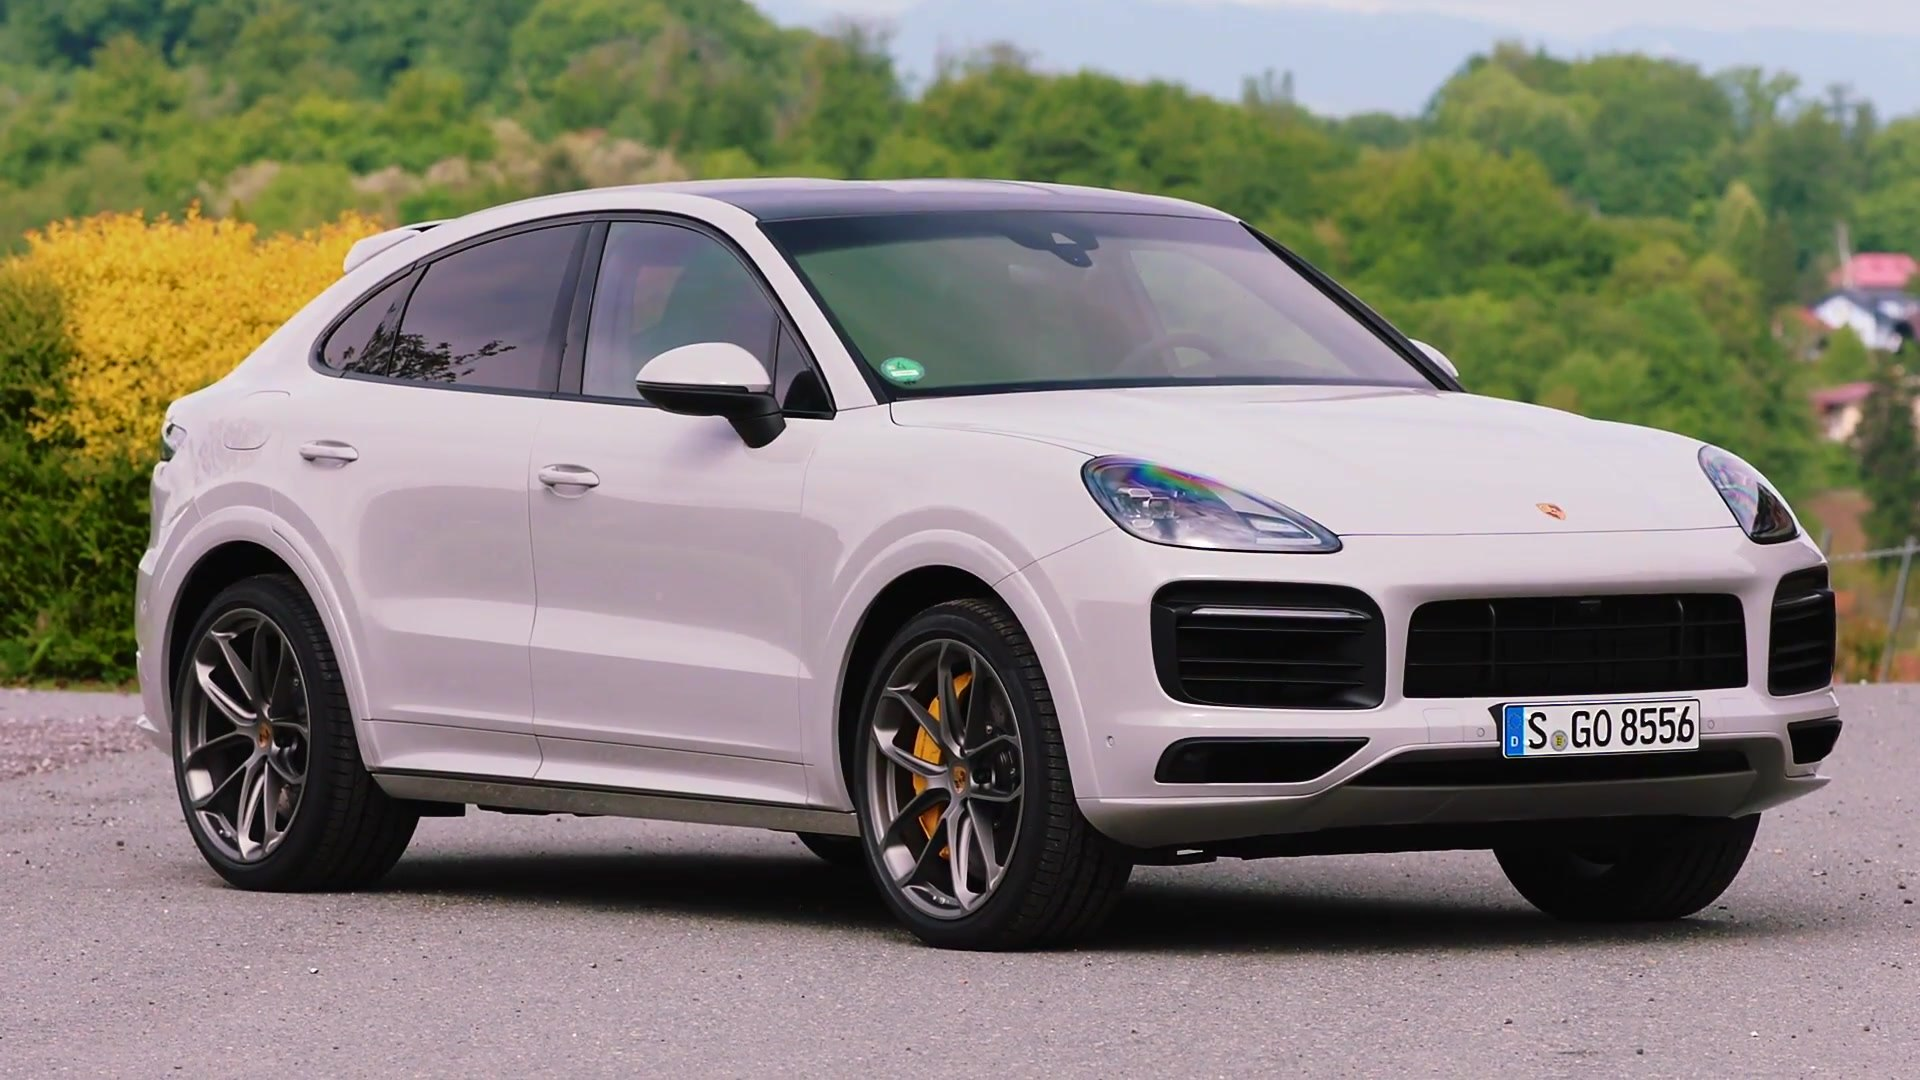 Porsche Cayenne S Coupe Design In Crayon Video Dailymotion